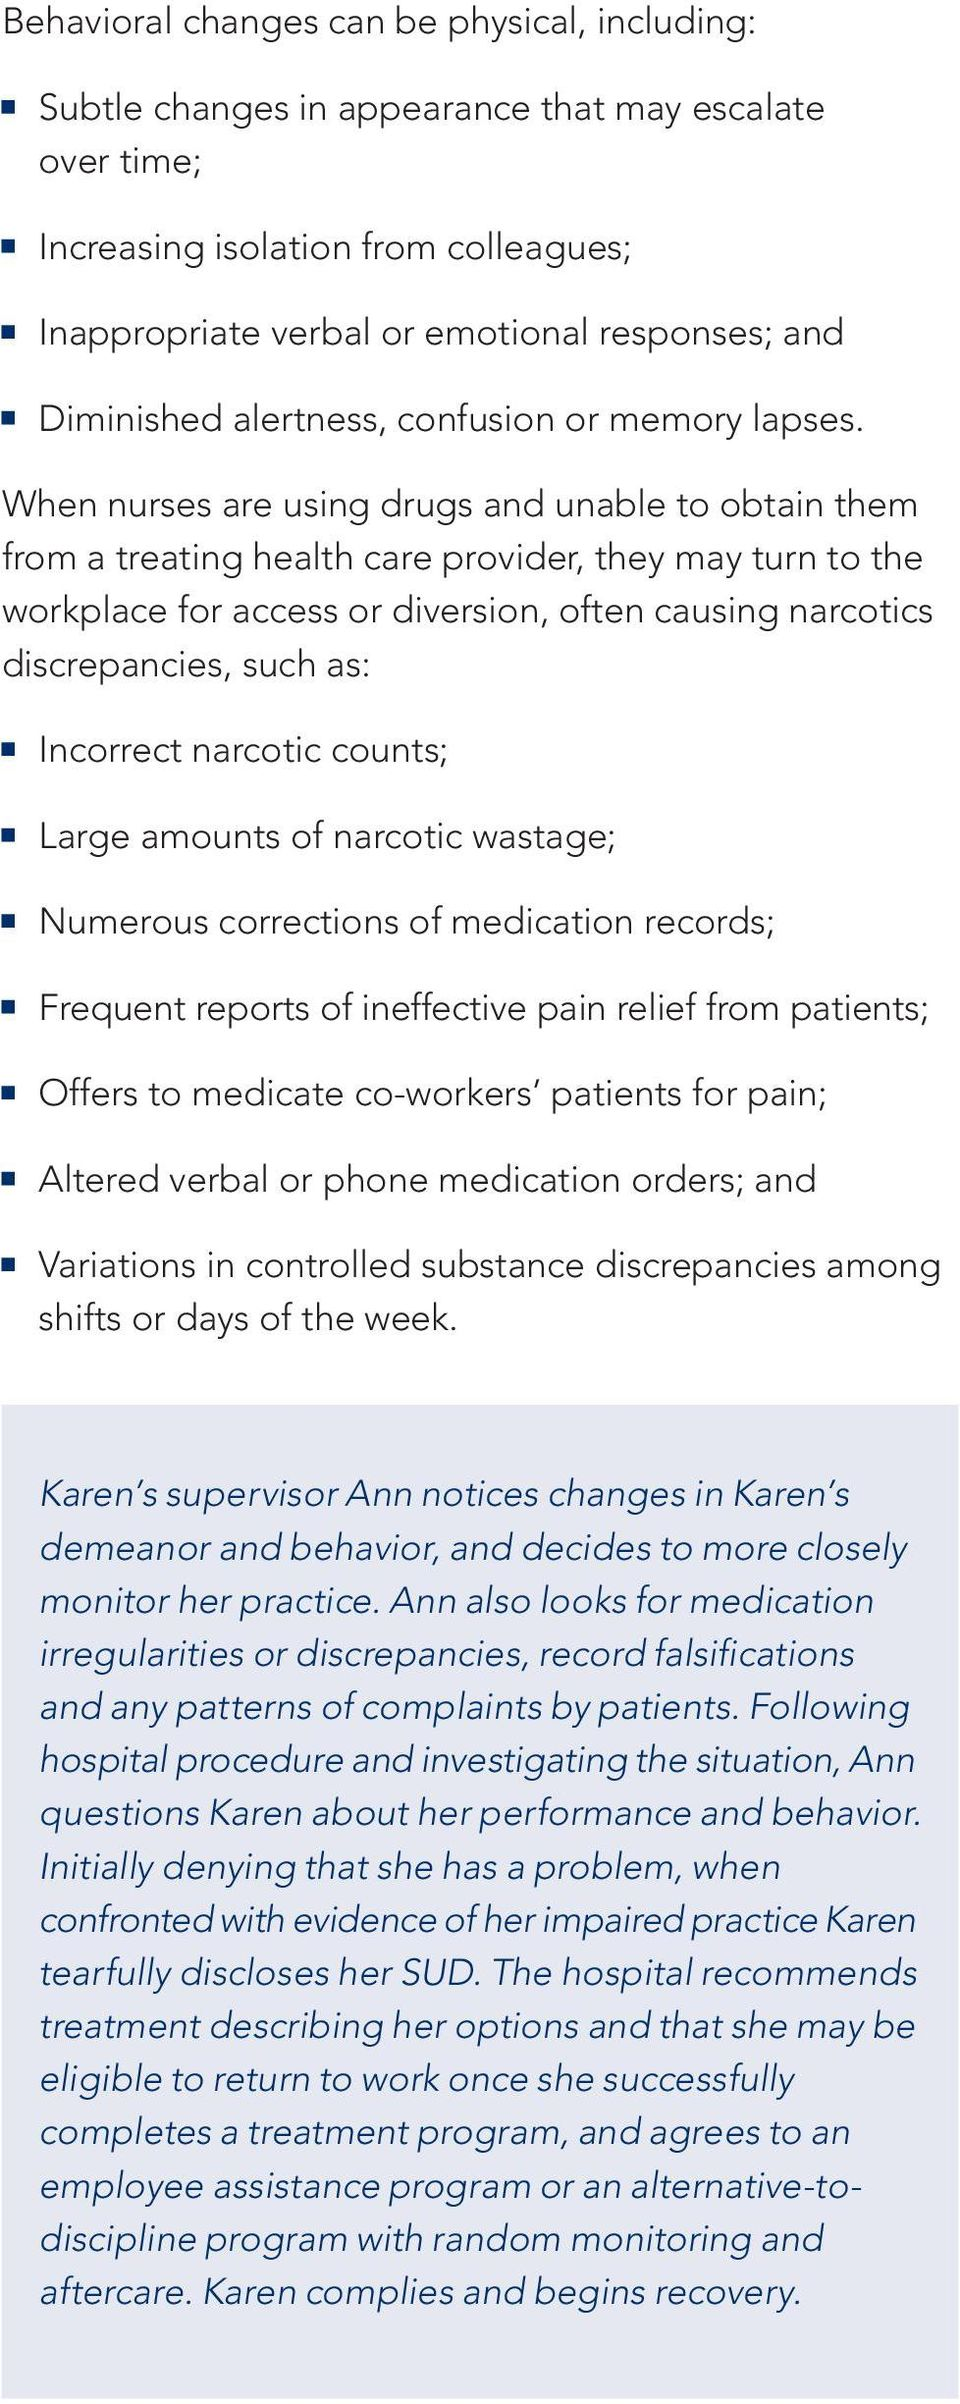 When nurses are using drugs and unable to obtain them from a treating health care provider, they may turn to the workplace for access or diversion, often causing narcotics discrepancies, such as: